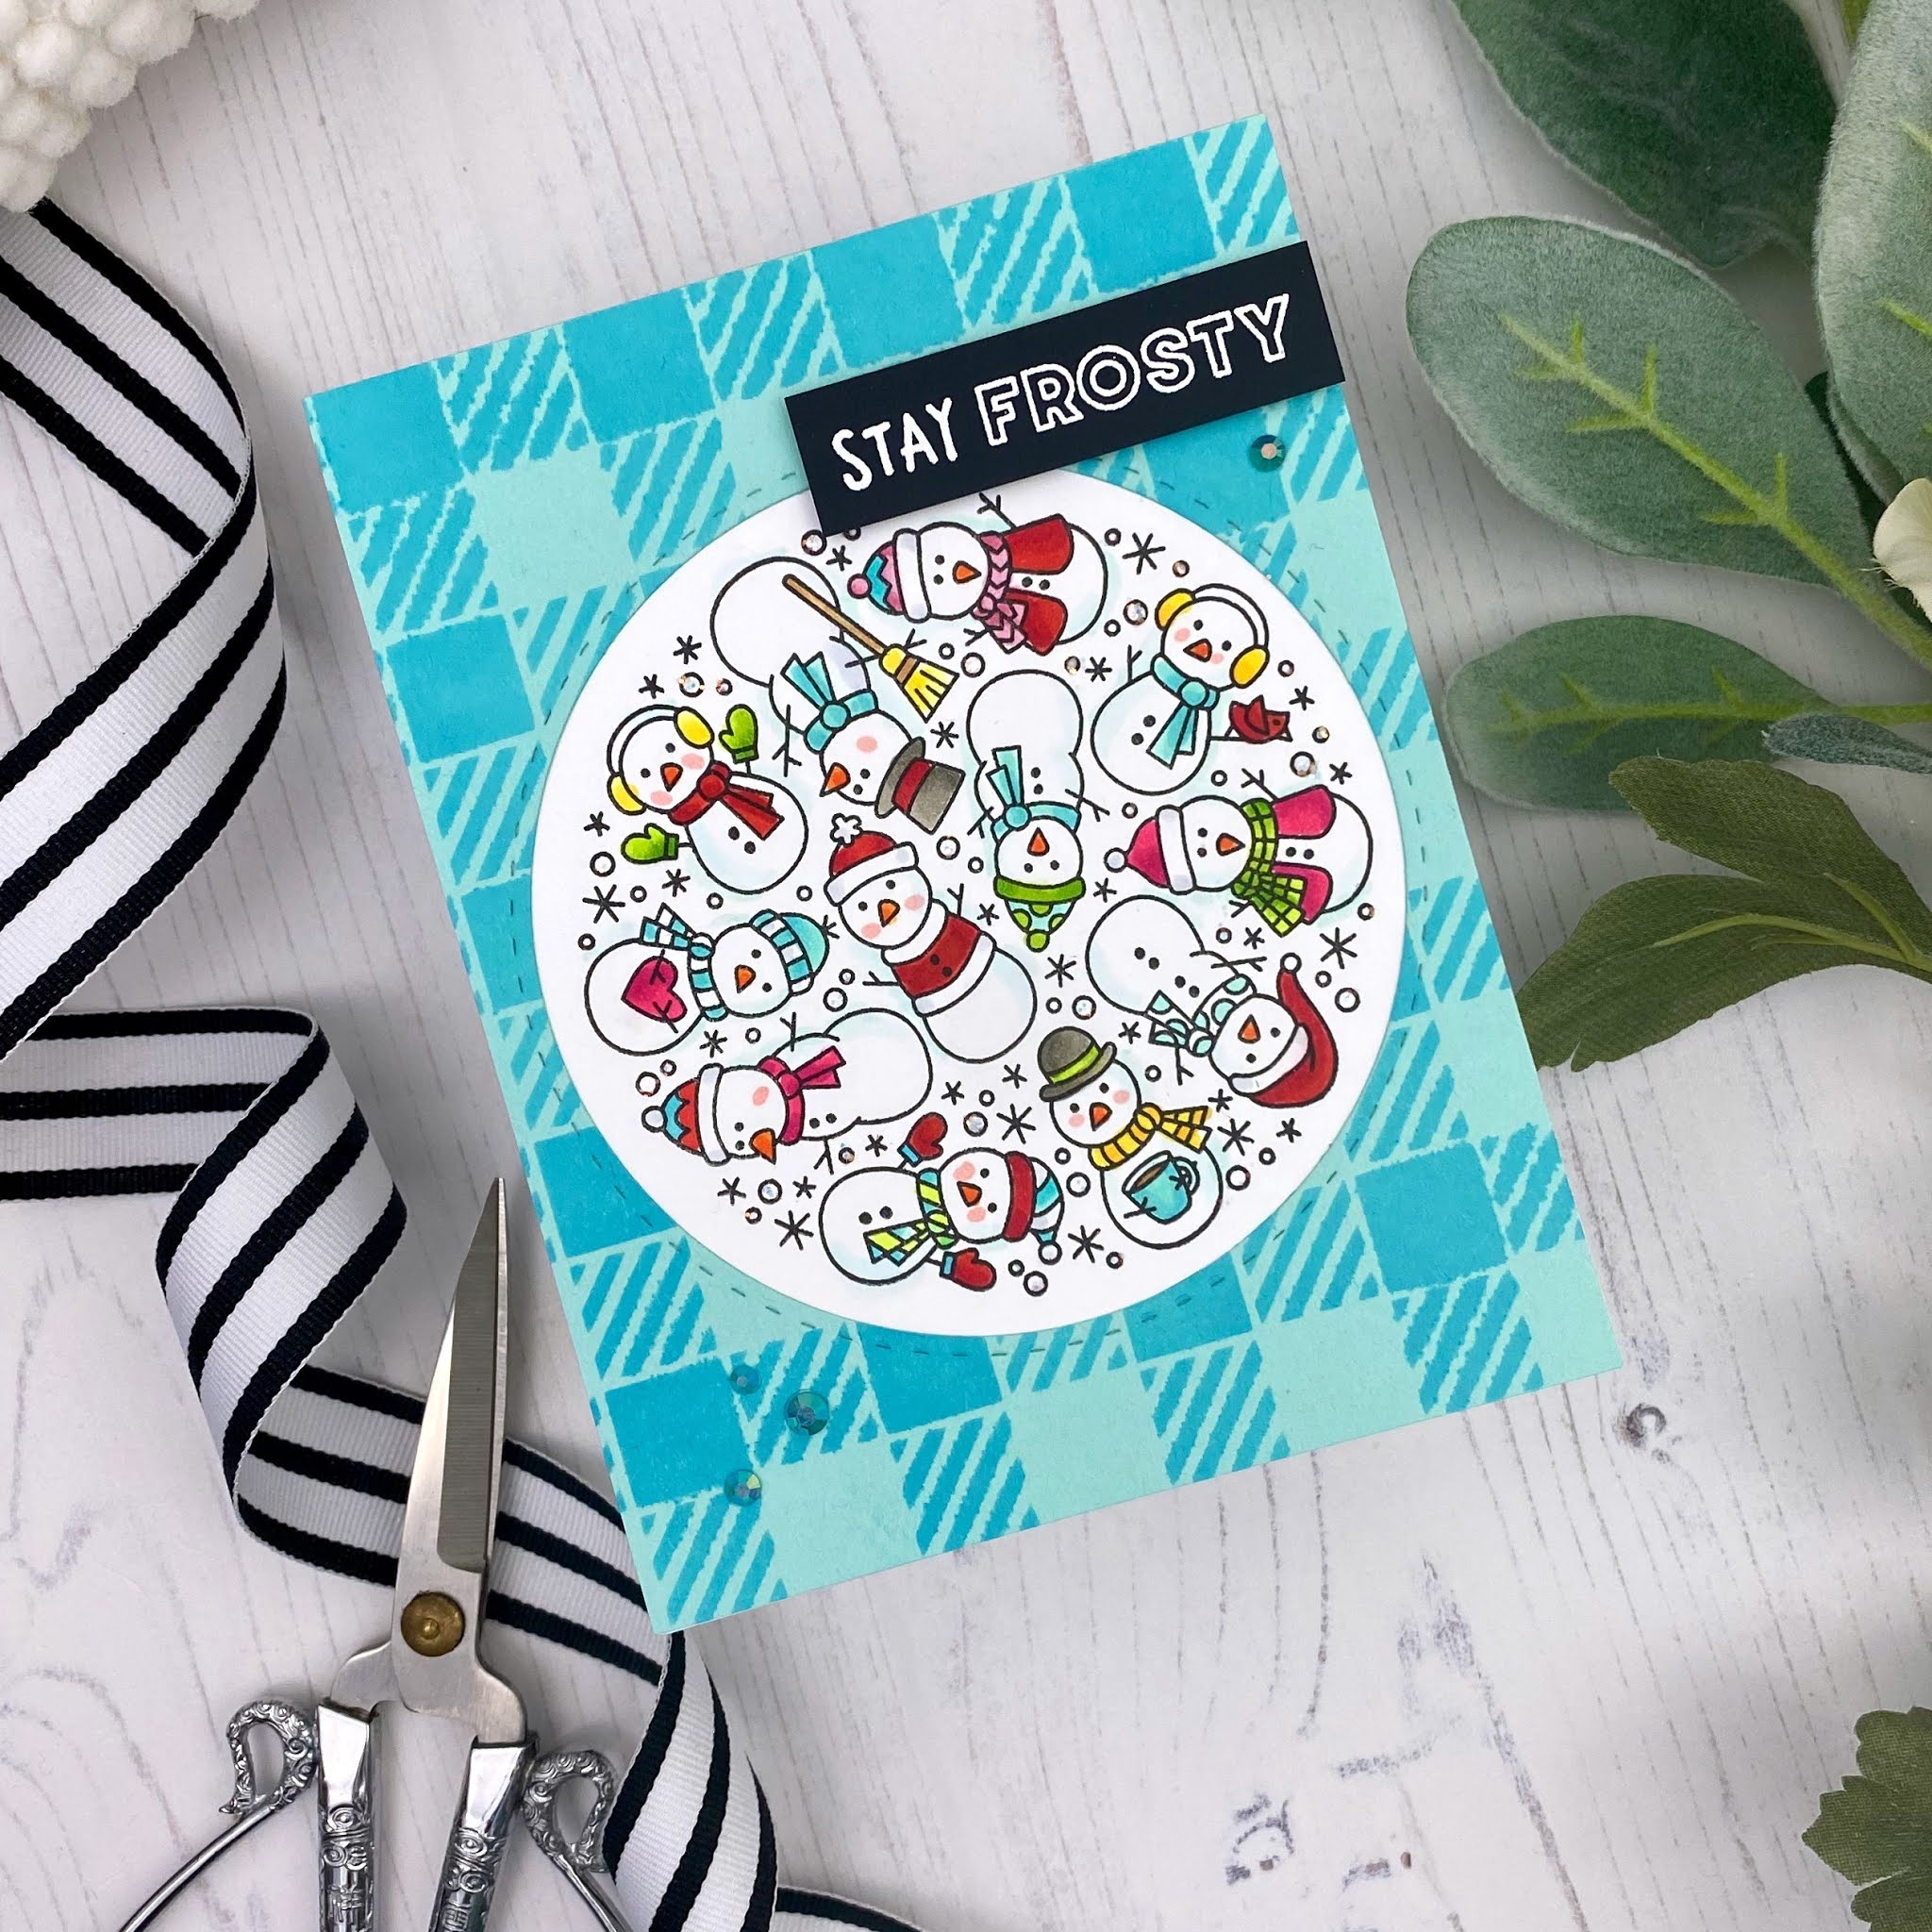 Stay Frosty Card by January Guest Designer Tricia Barber | Snowman Roundabout Stamp Set and Gingham Stencil by Newton's Nook Designs #newtonsnook